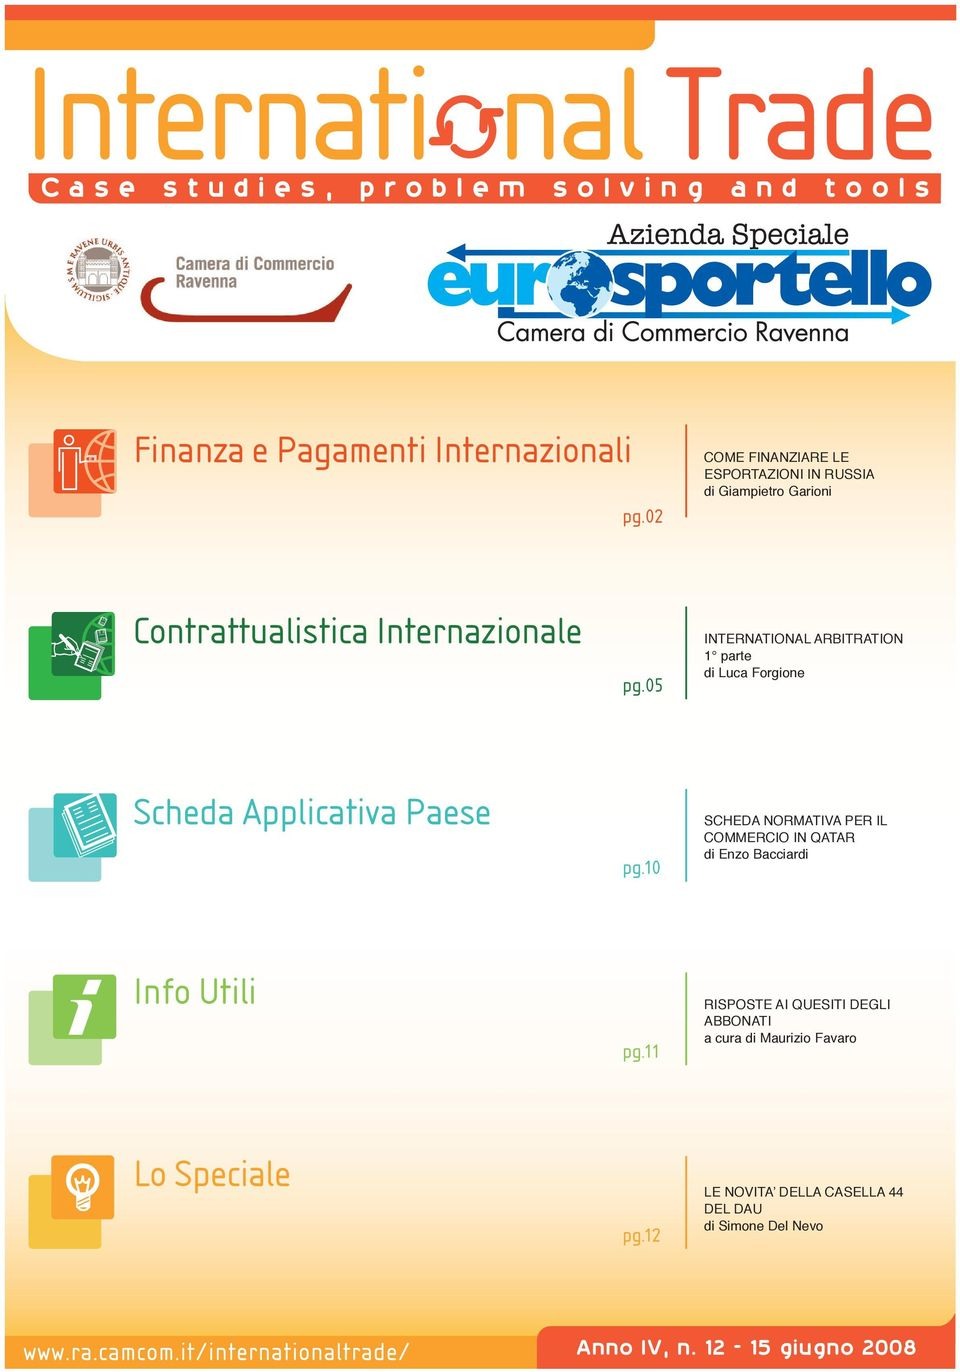 05 INTERNATIONAL ARBITRATION 1 parte di Luca Forgione Scheda Applicativa Paese pg.